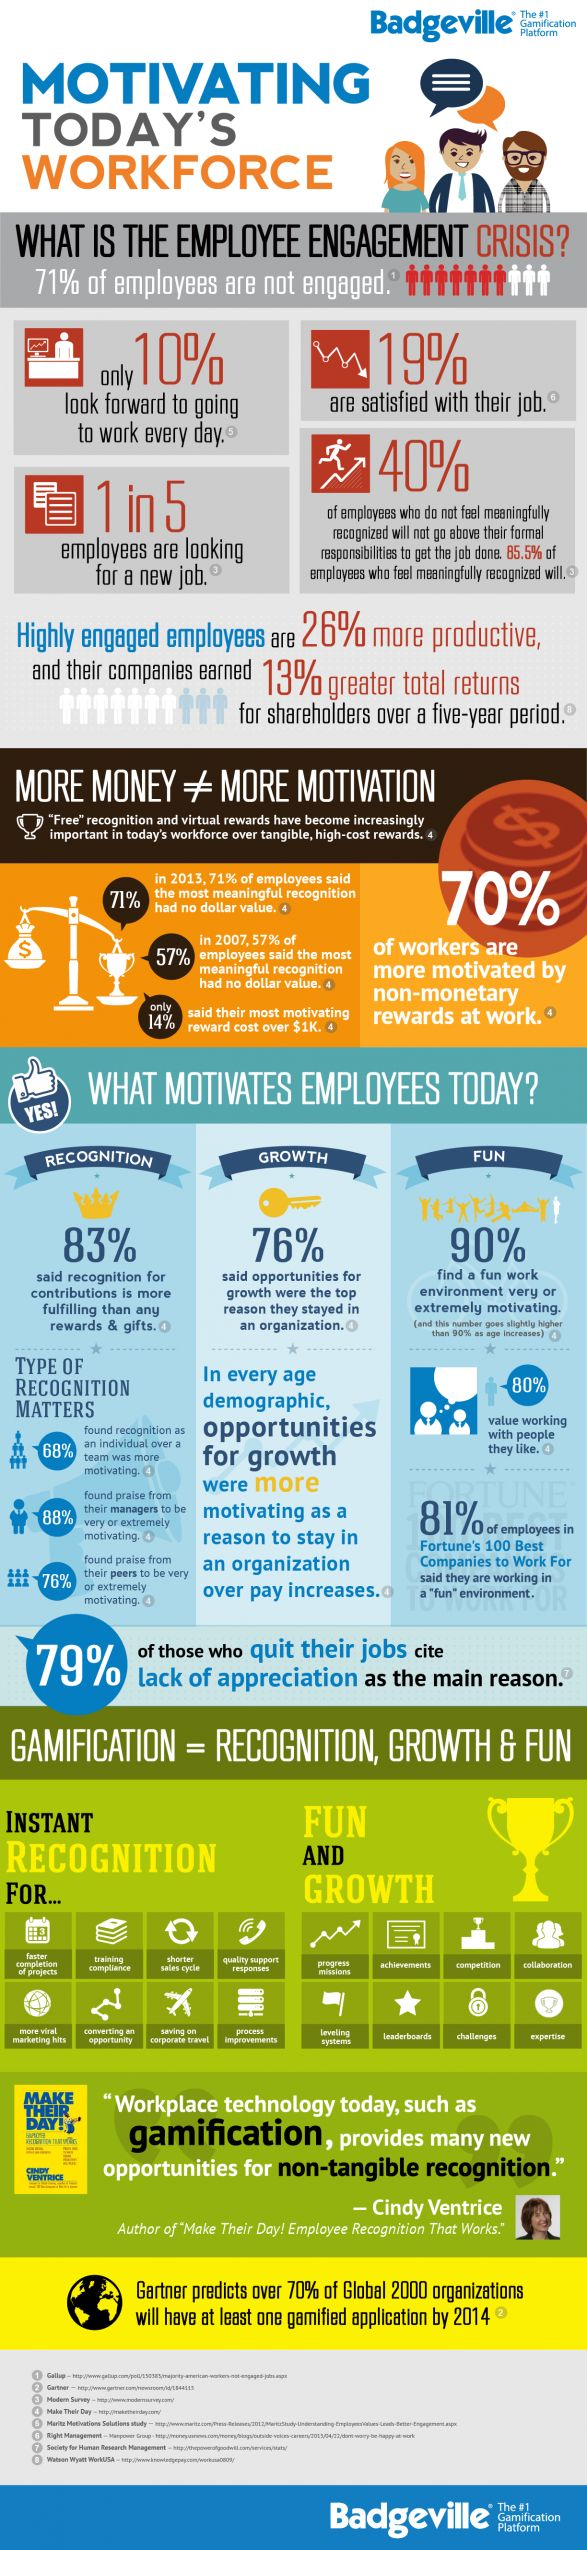 motivation and total rewaeds How google motivates their employees with rewards and perks and satisfiers relate to motivation such as achievement rewards accounted for 488% of the total.